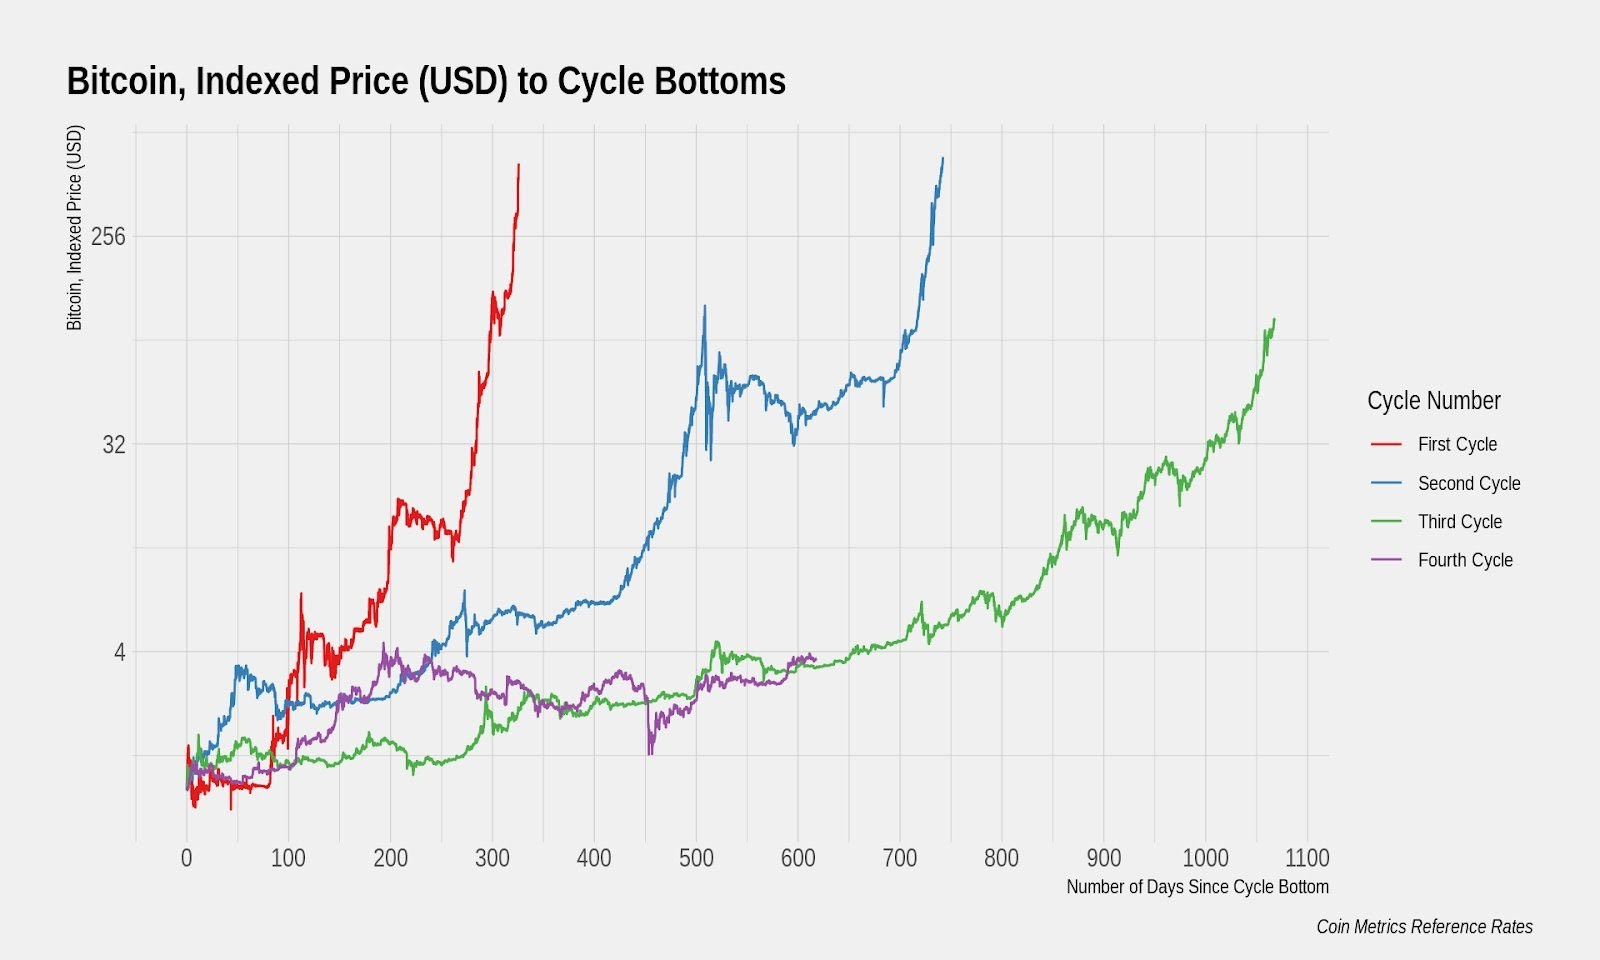 Previous market cycles of Bitcoin